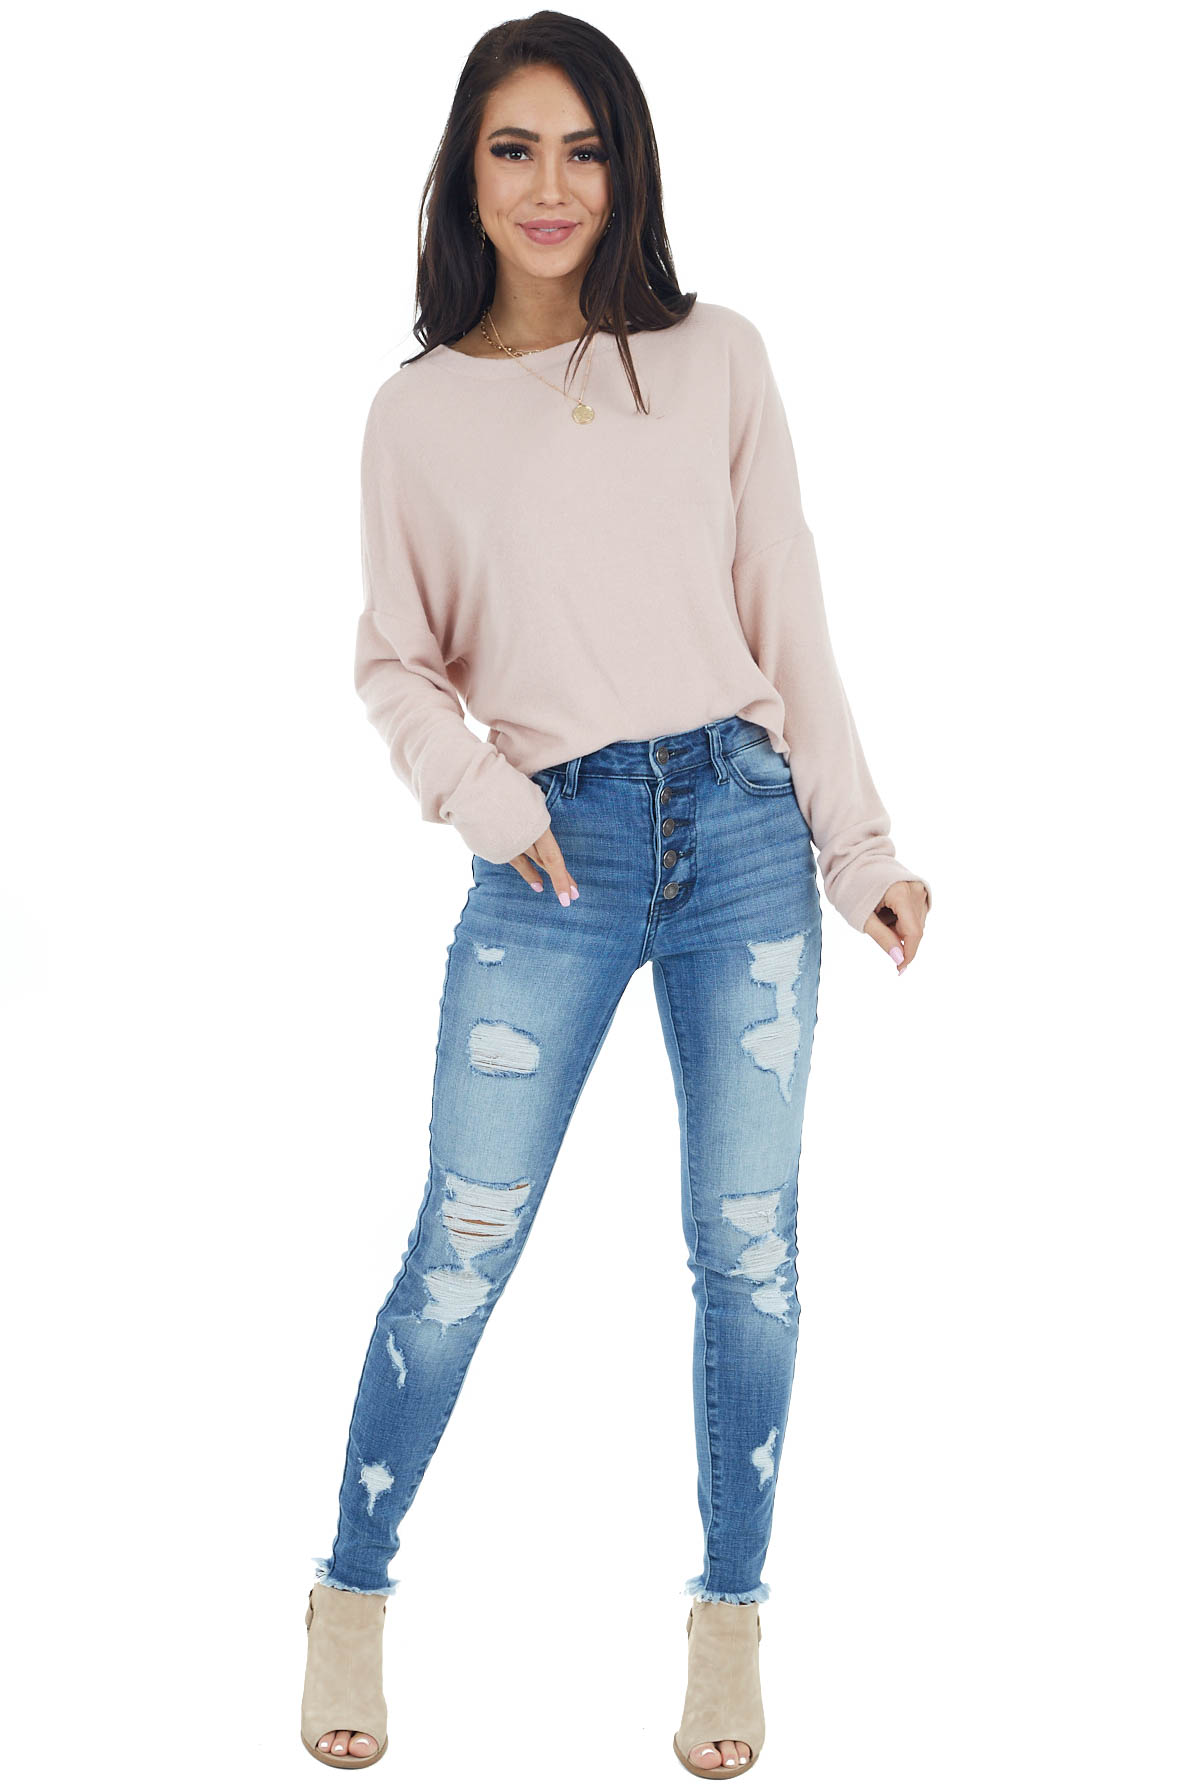 Blush Long Sleeve Crop Top with Back Cut Out and Tie Detail